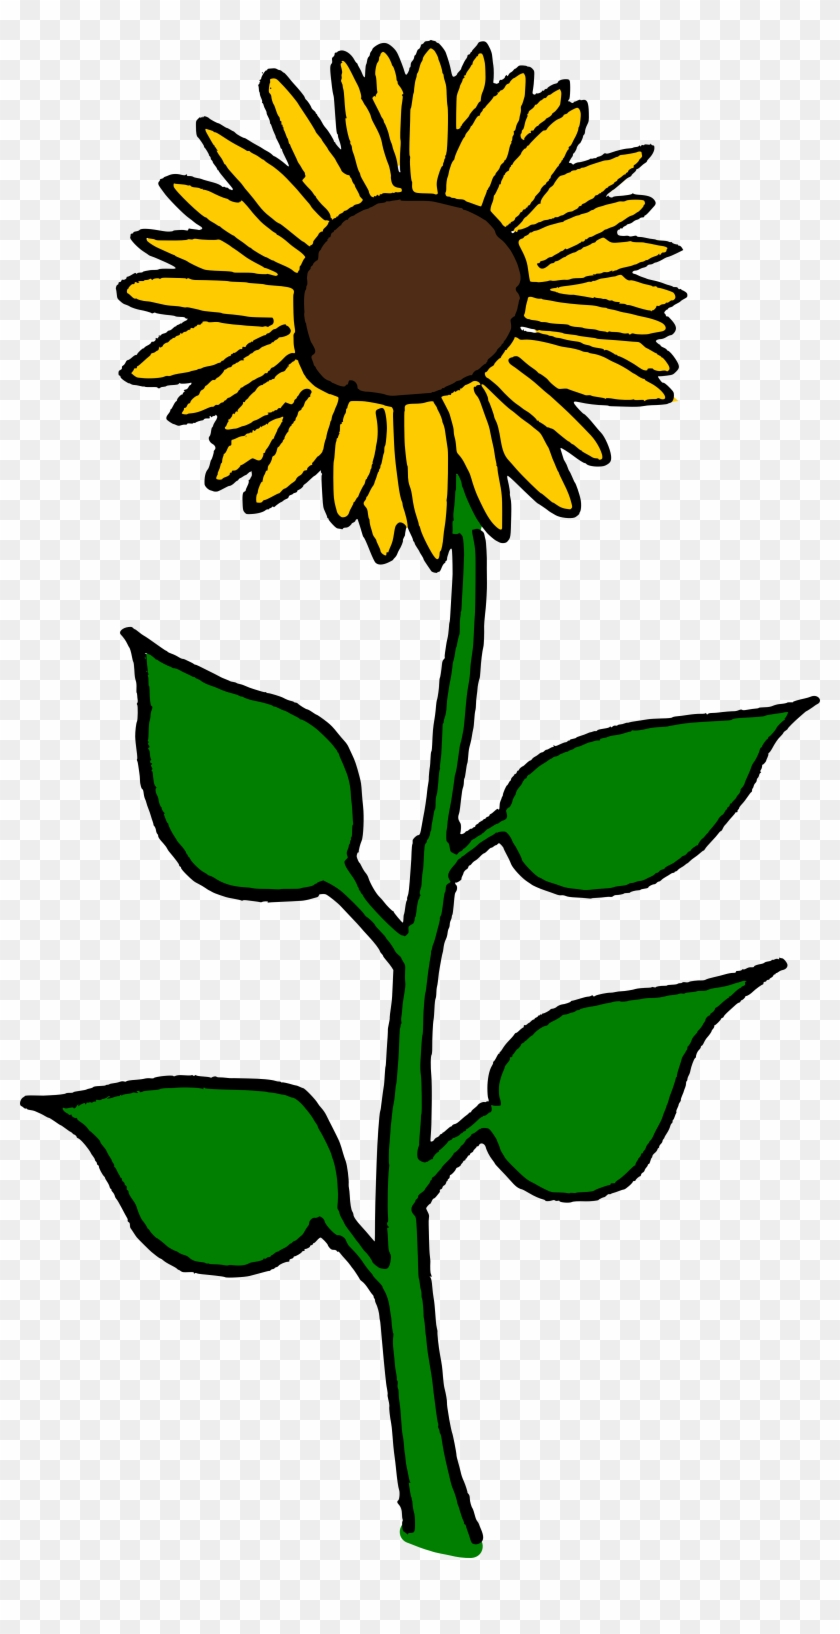 Common Sunflower Sunflower Seed Helianthus Giganteus - Giant Sunflower Clip Art #3437